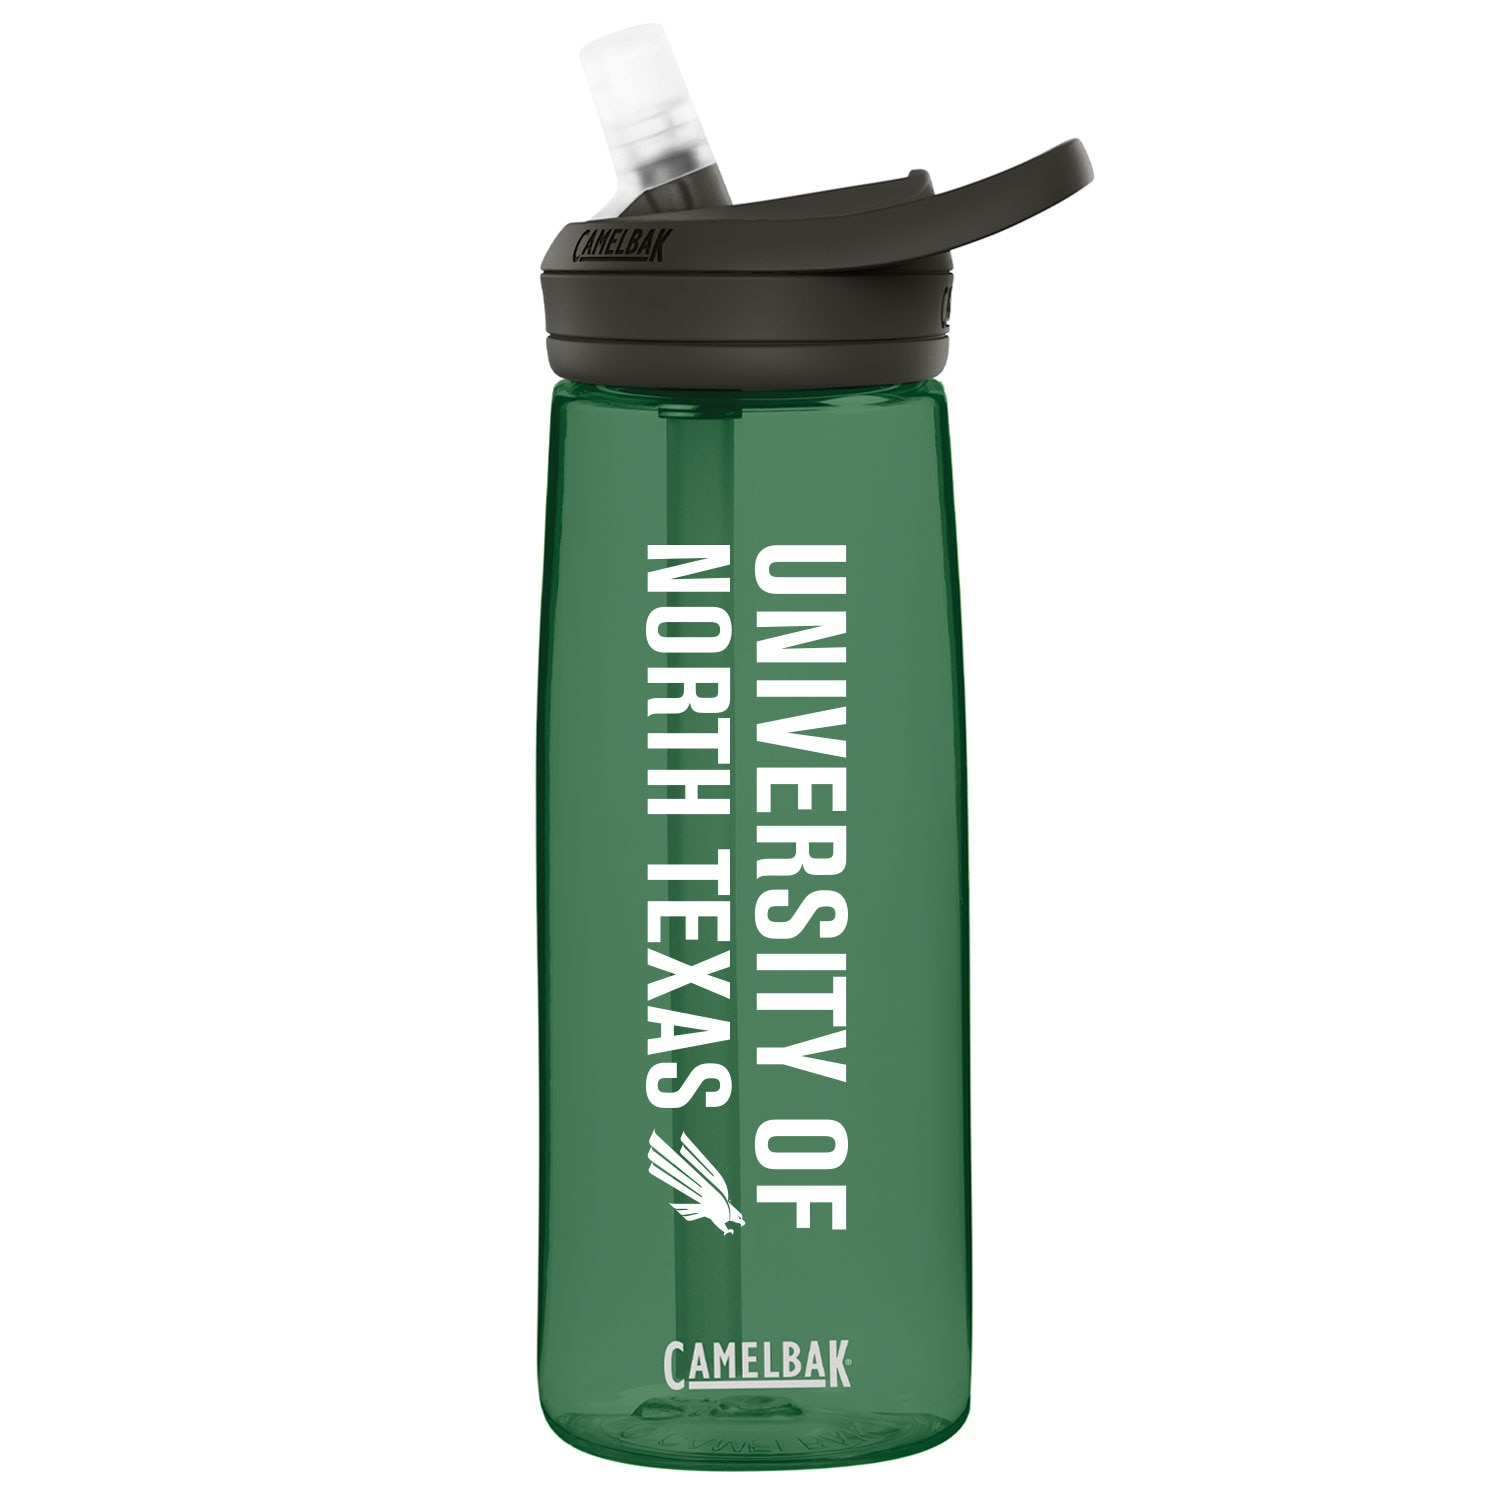 University of North Texas CamelBak Water Bottle